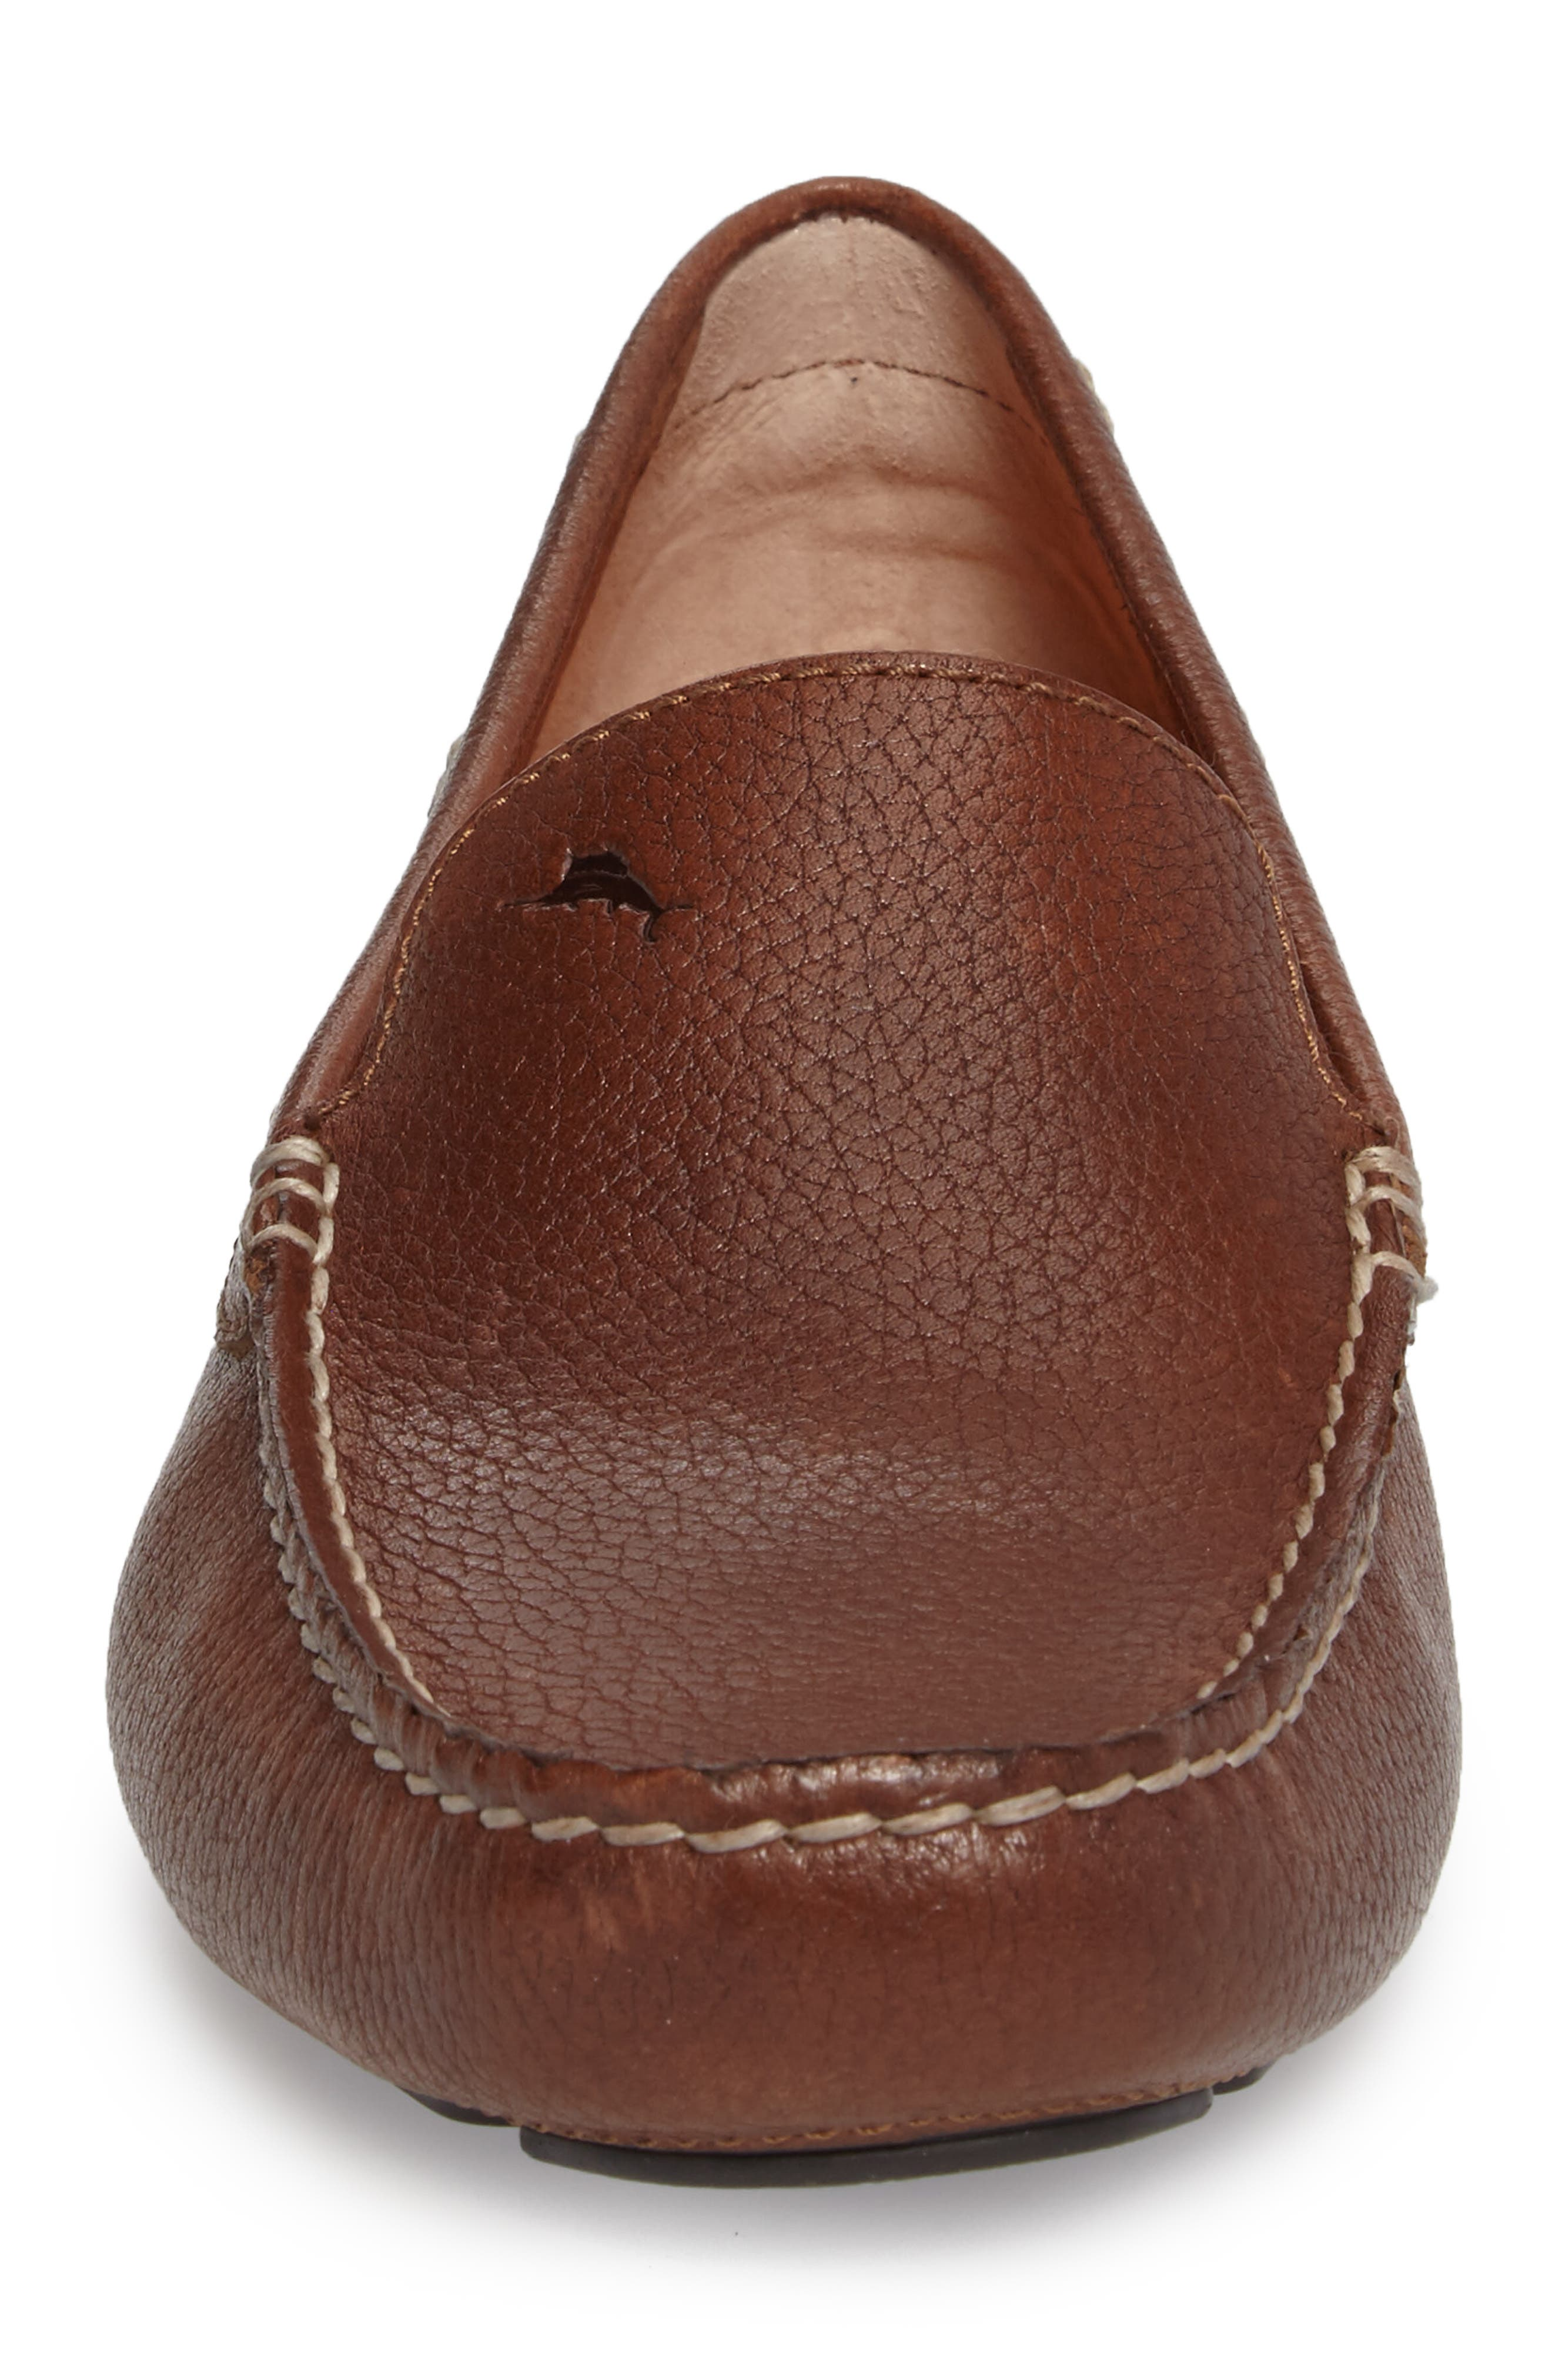 Pagota Driving Loafer,                             Alternate thumbnail 4, color,                             DARK BROWN LEATHER